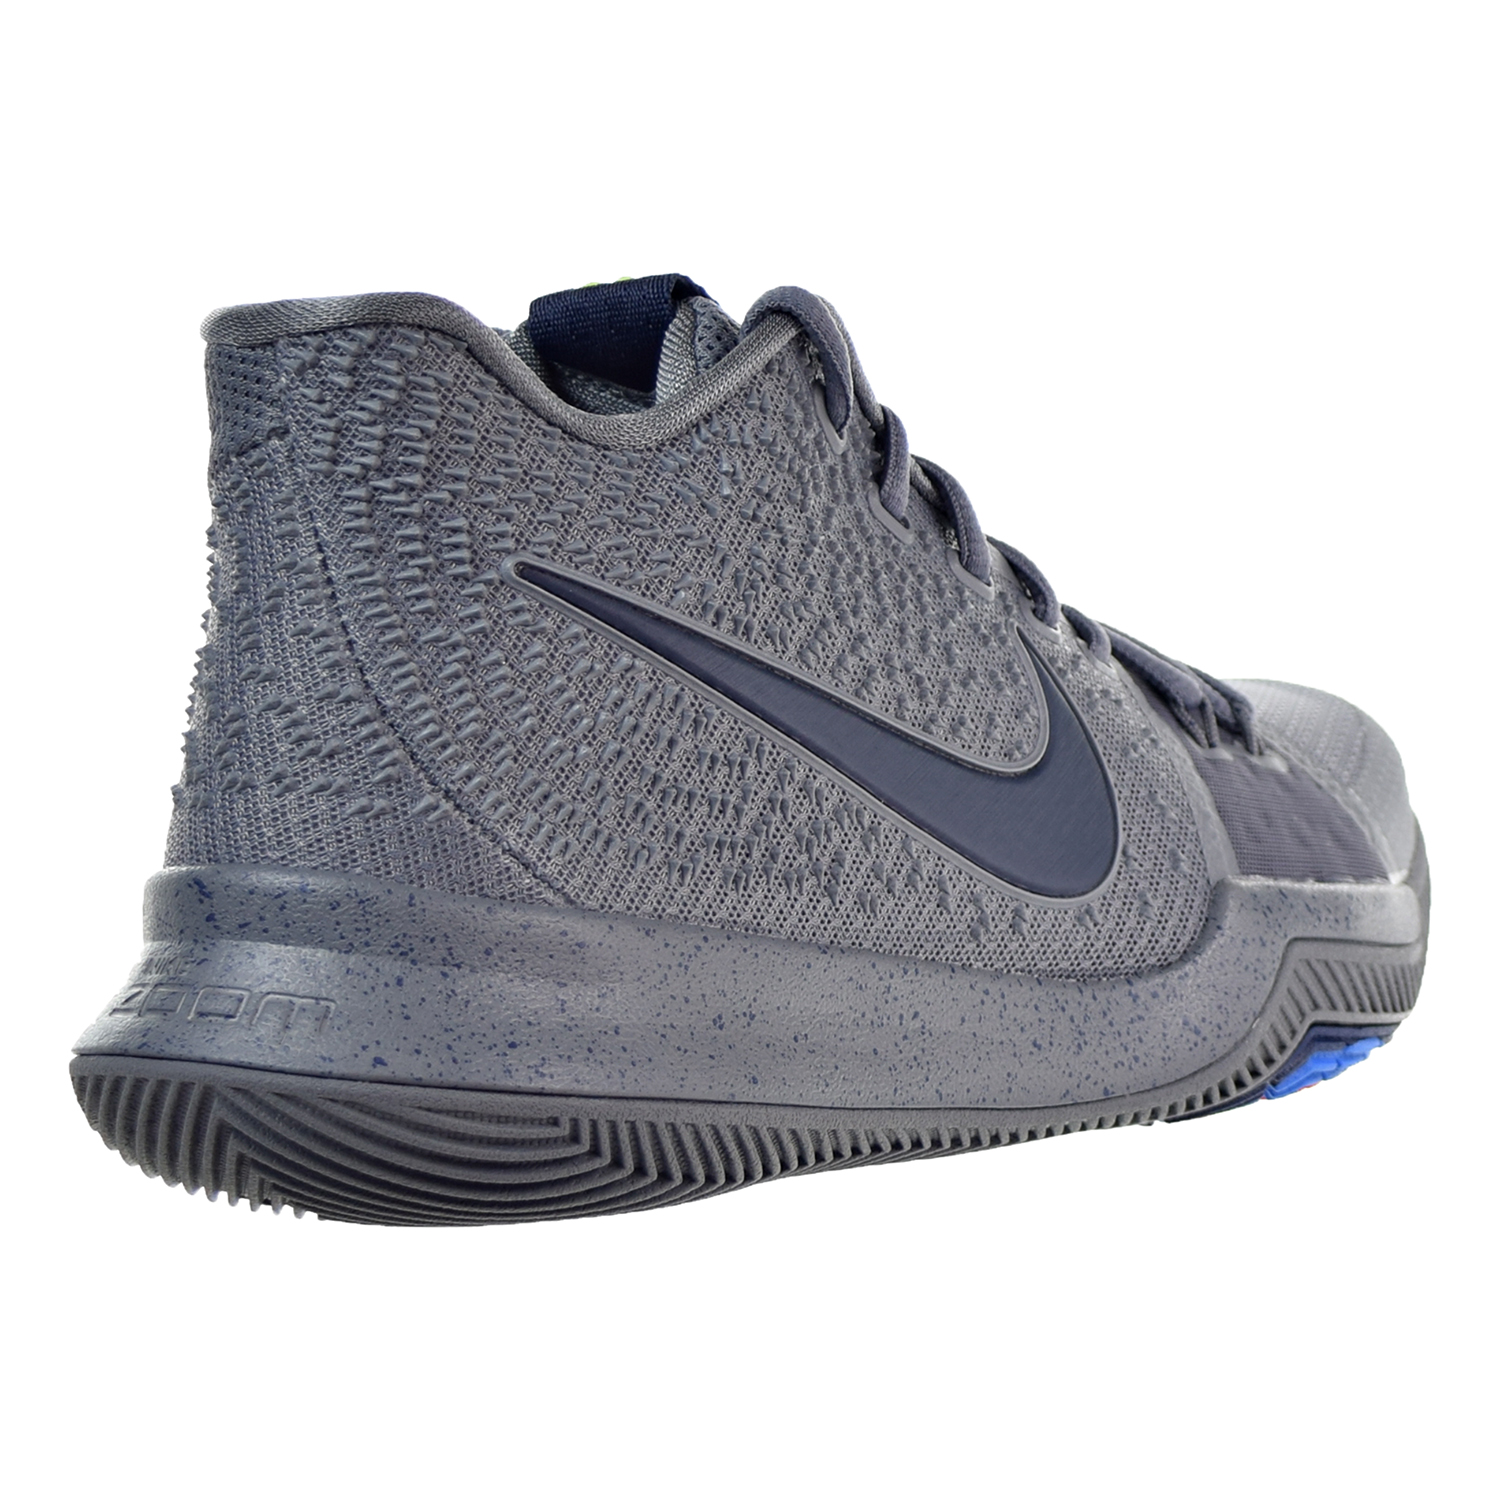 86fb83878f0 ... denmark nike kyrie 3 mens shoes cool grey midnight navy pure polarized  blue 852395 001 10.5